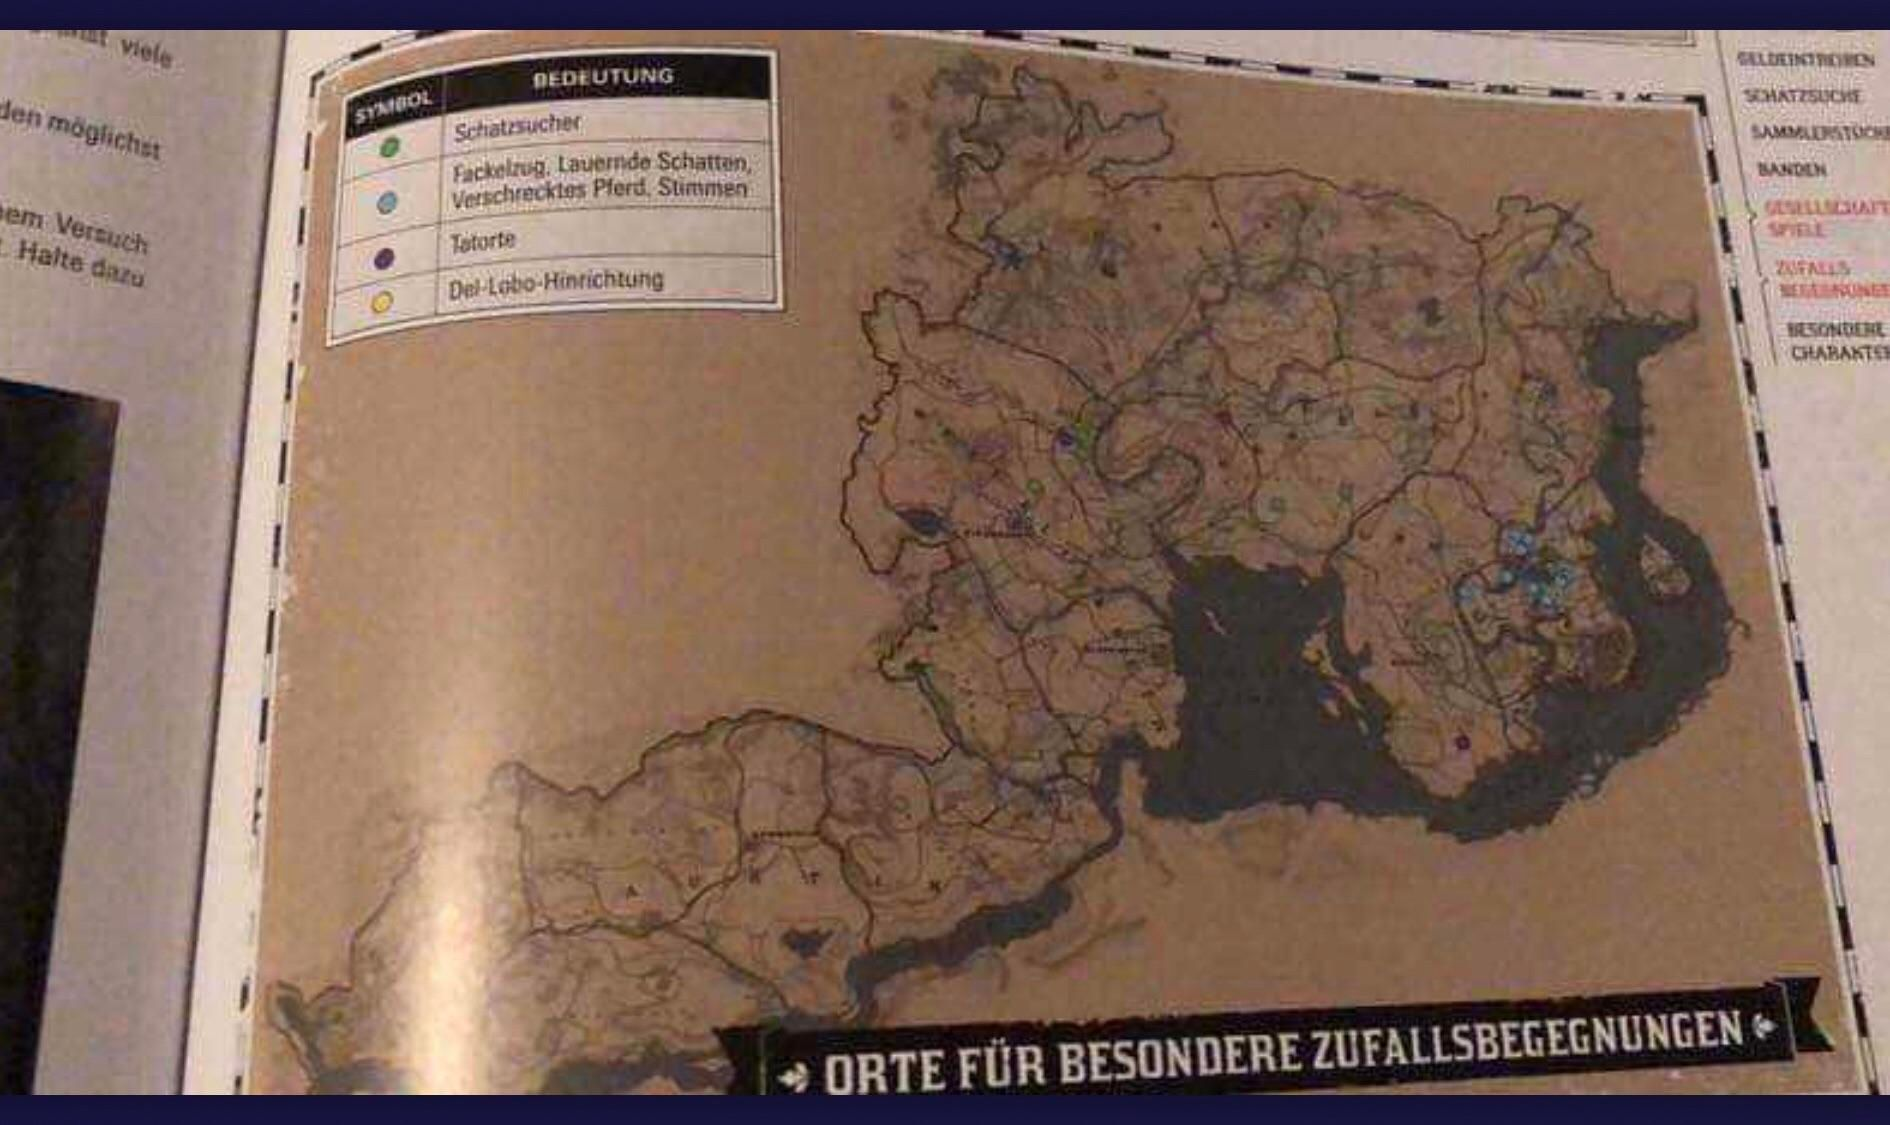 Red Dead 2 World Map.Red Dead Redemption 2 S Full Map Has Been Leaked The Nexus